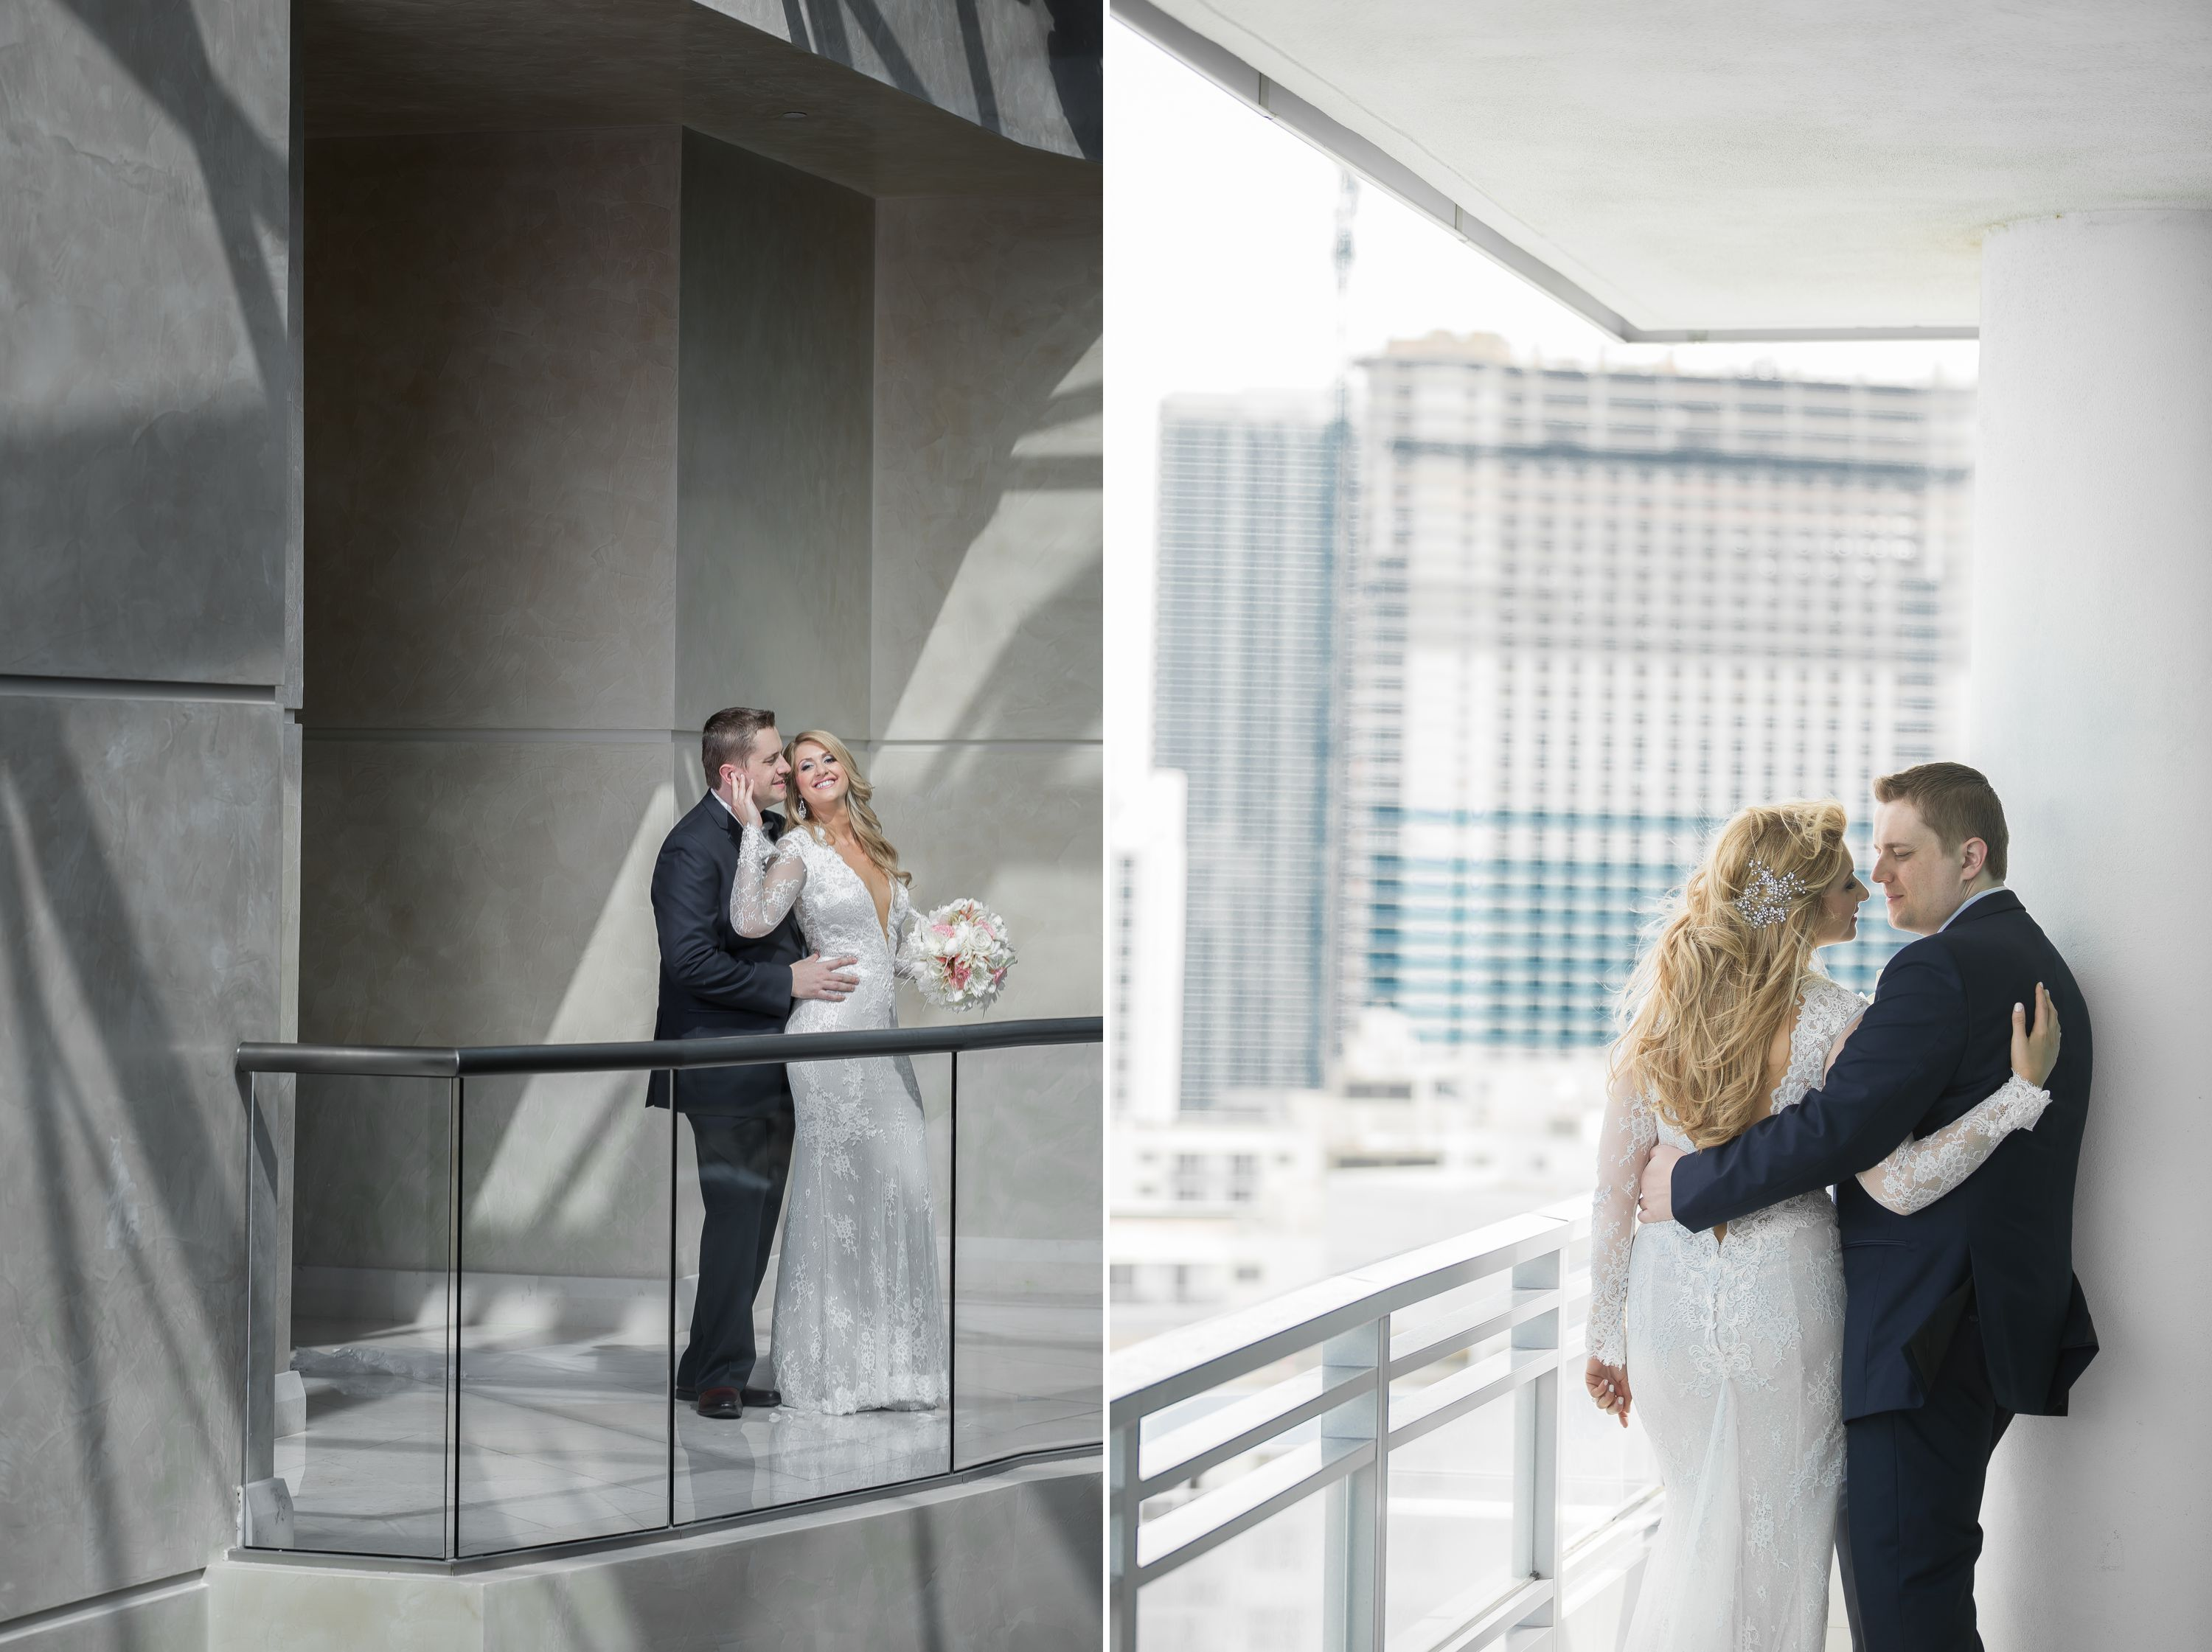 Styled photos of bride and groom at a Diplomat Beach Resort Wedding